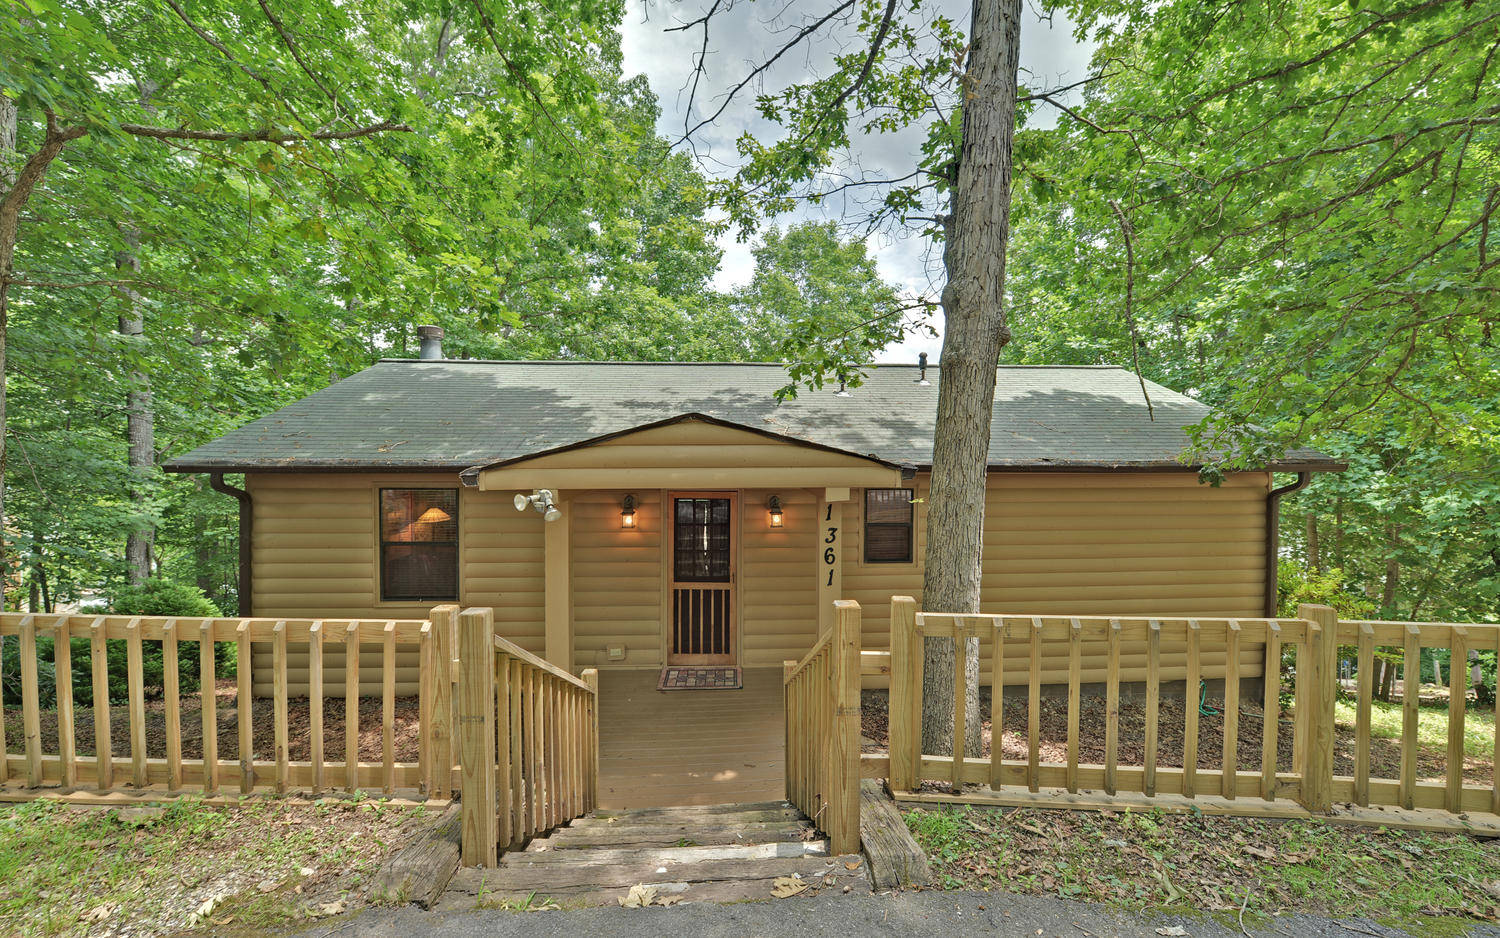 Lake Nottely Home for Sale with Established Rental Hist